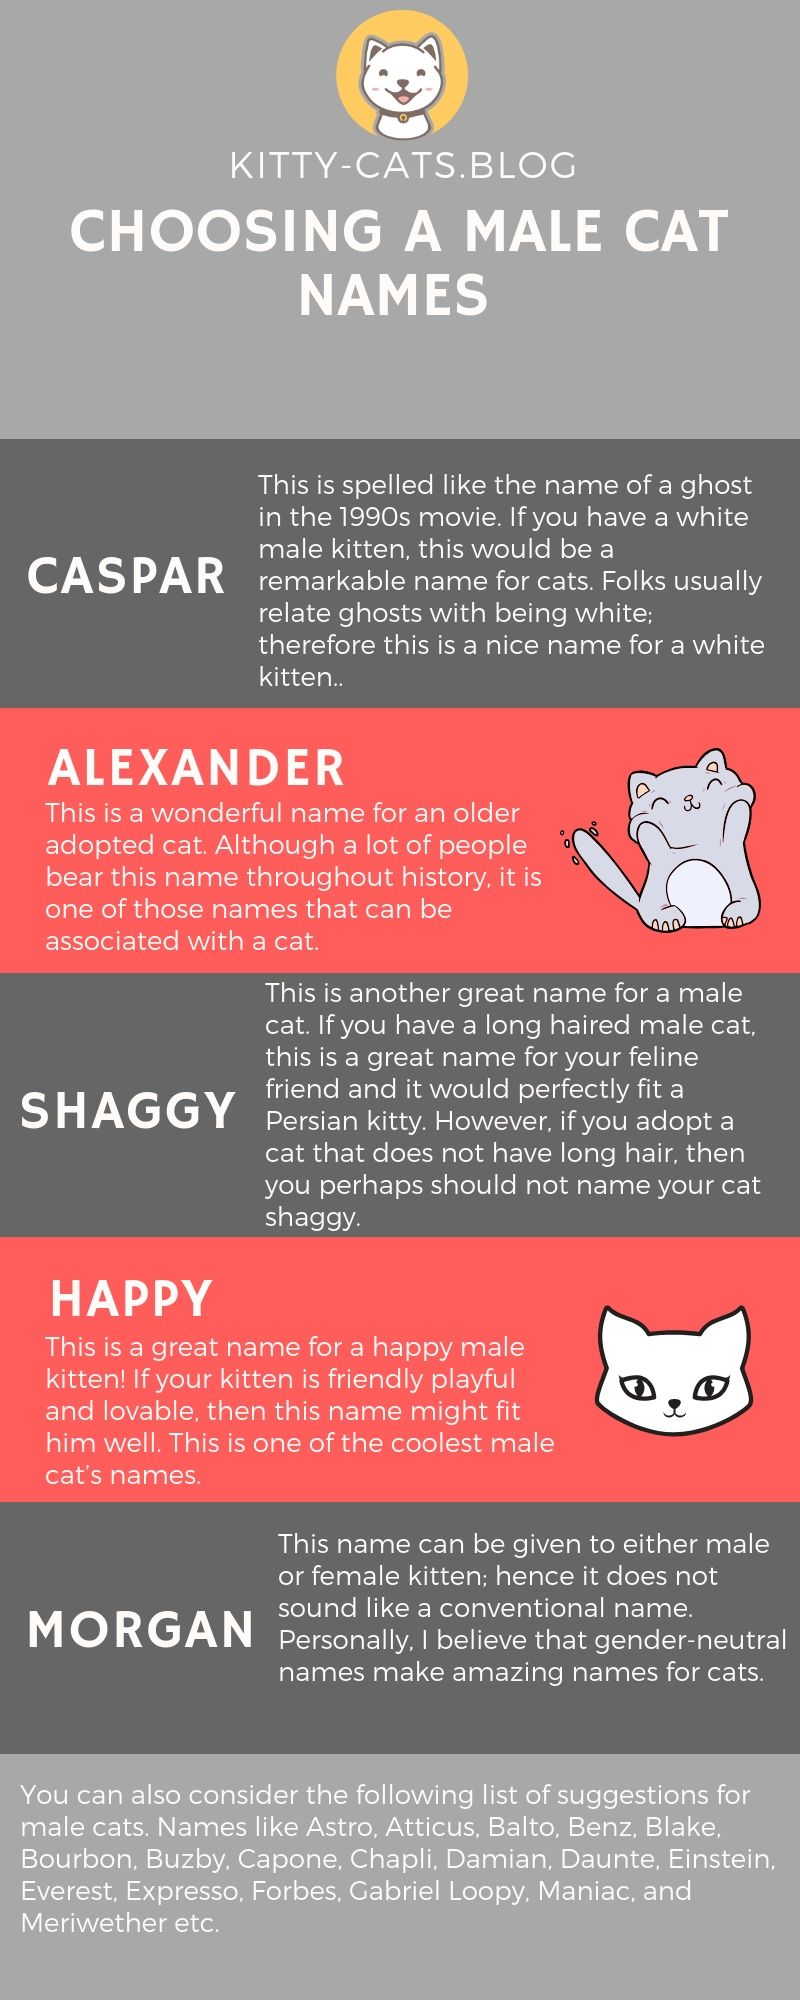 Choosing A Male Cat Names Female Cat Names Kitty Cats Blog Cat Names Cat Noises Cats And Cucumbers